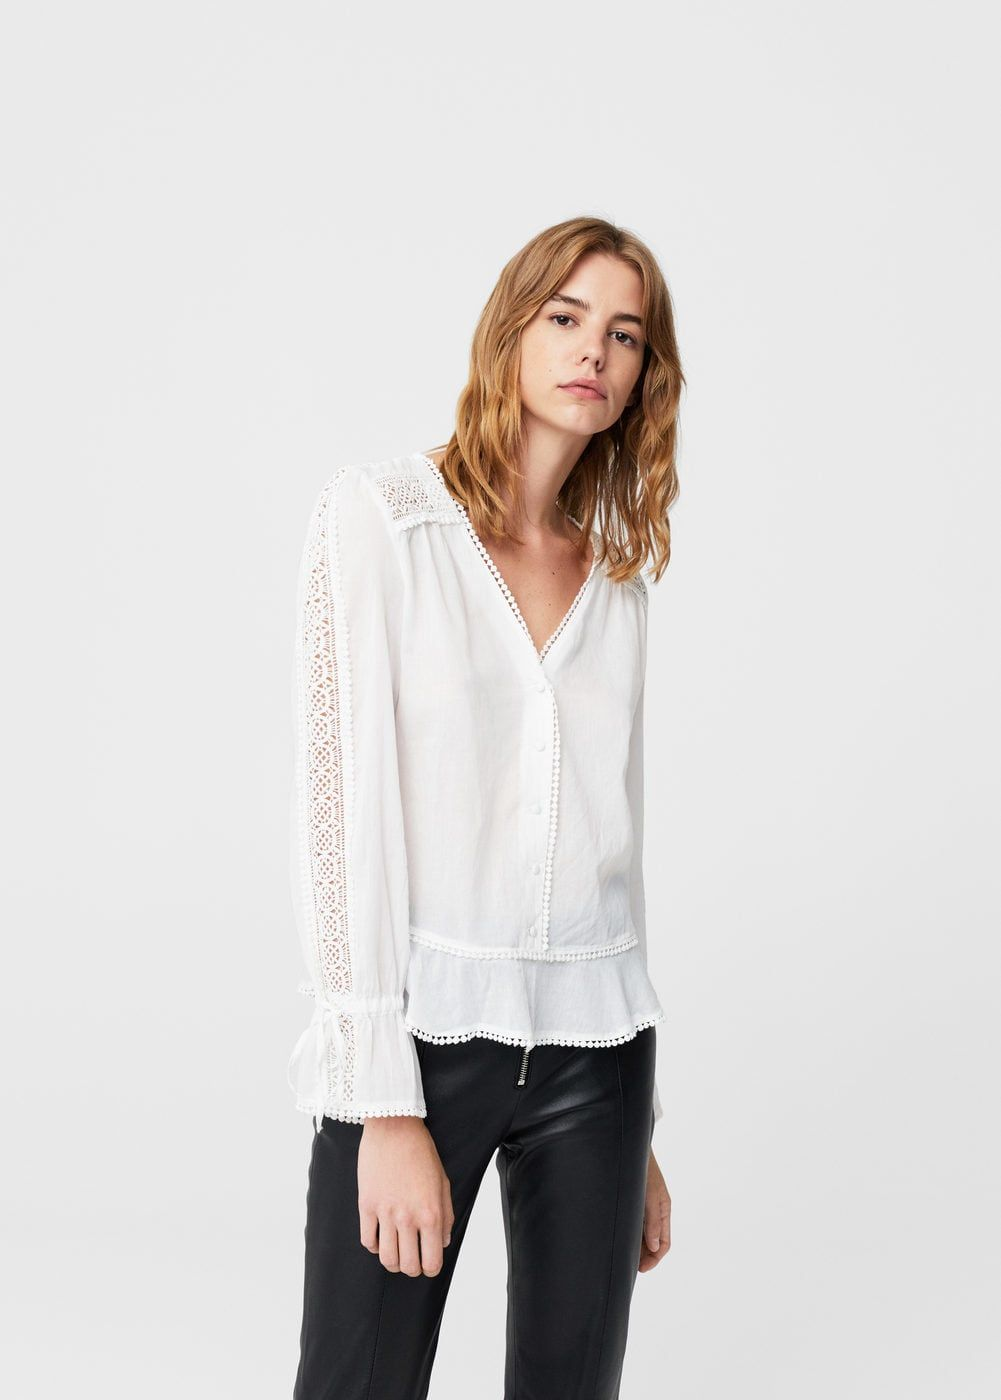 SHIRTS - Blouses F.it Purchase tXISbVFj